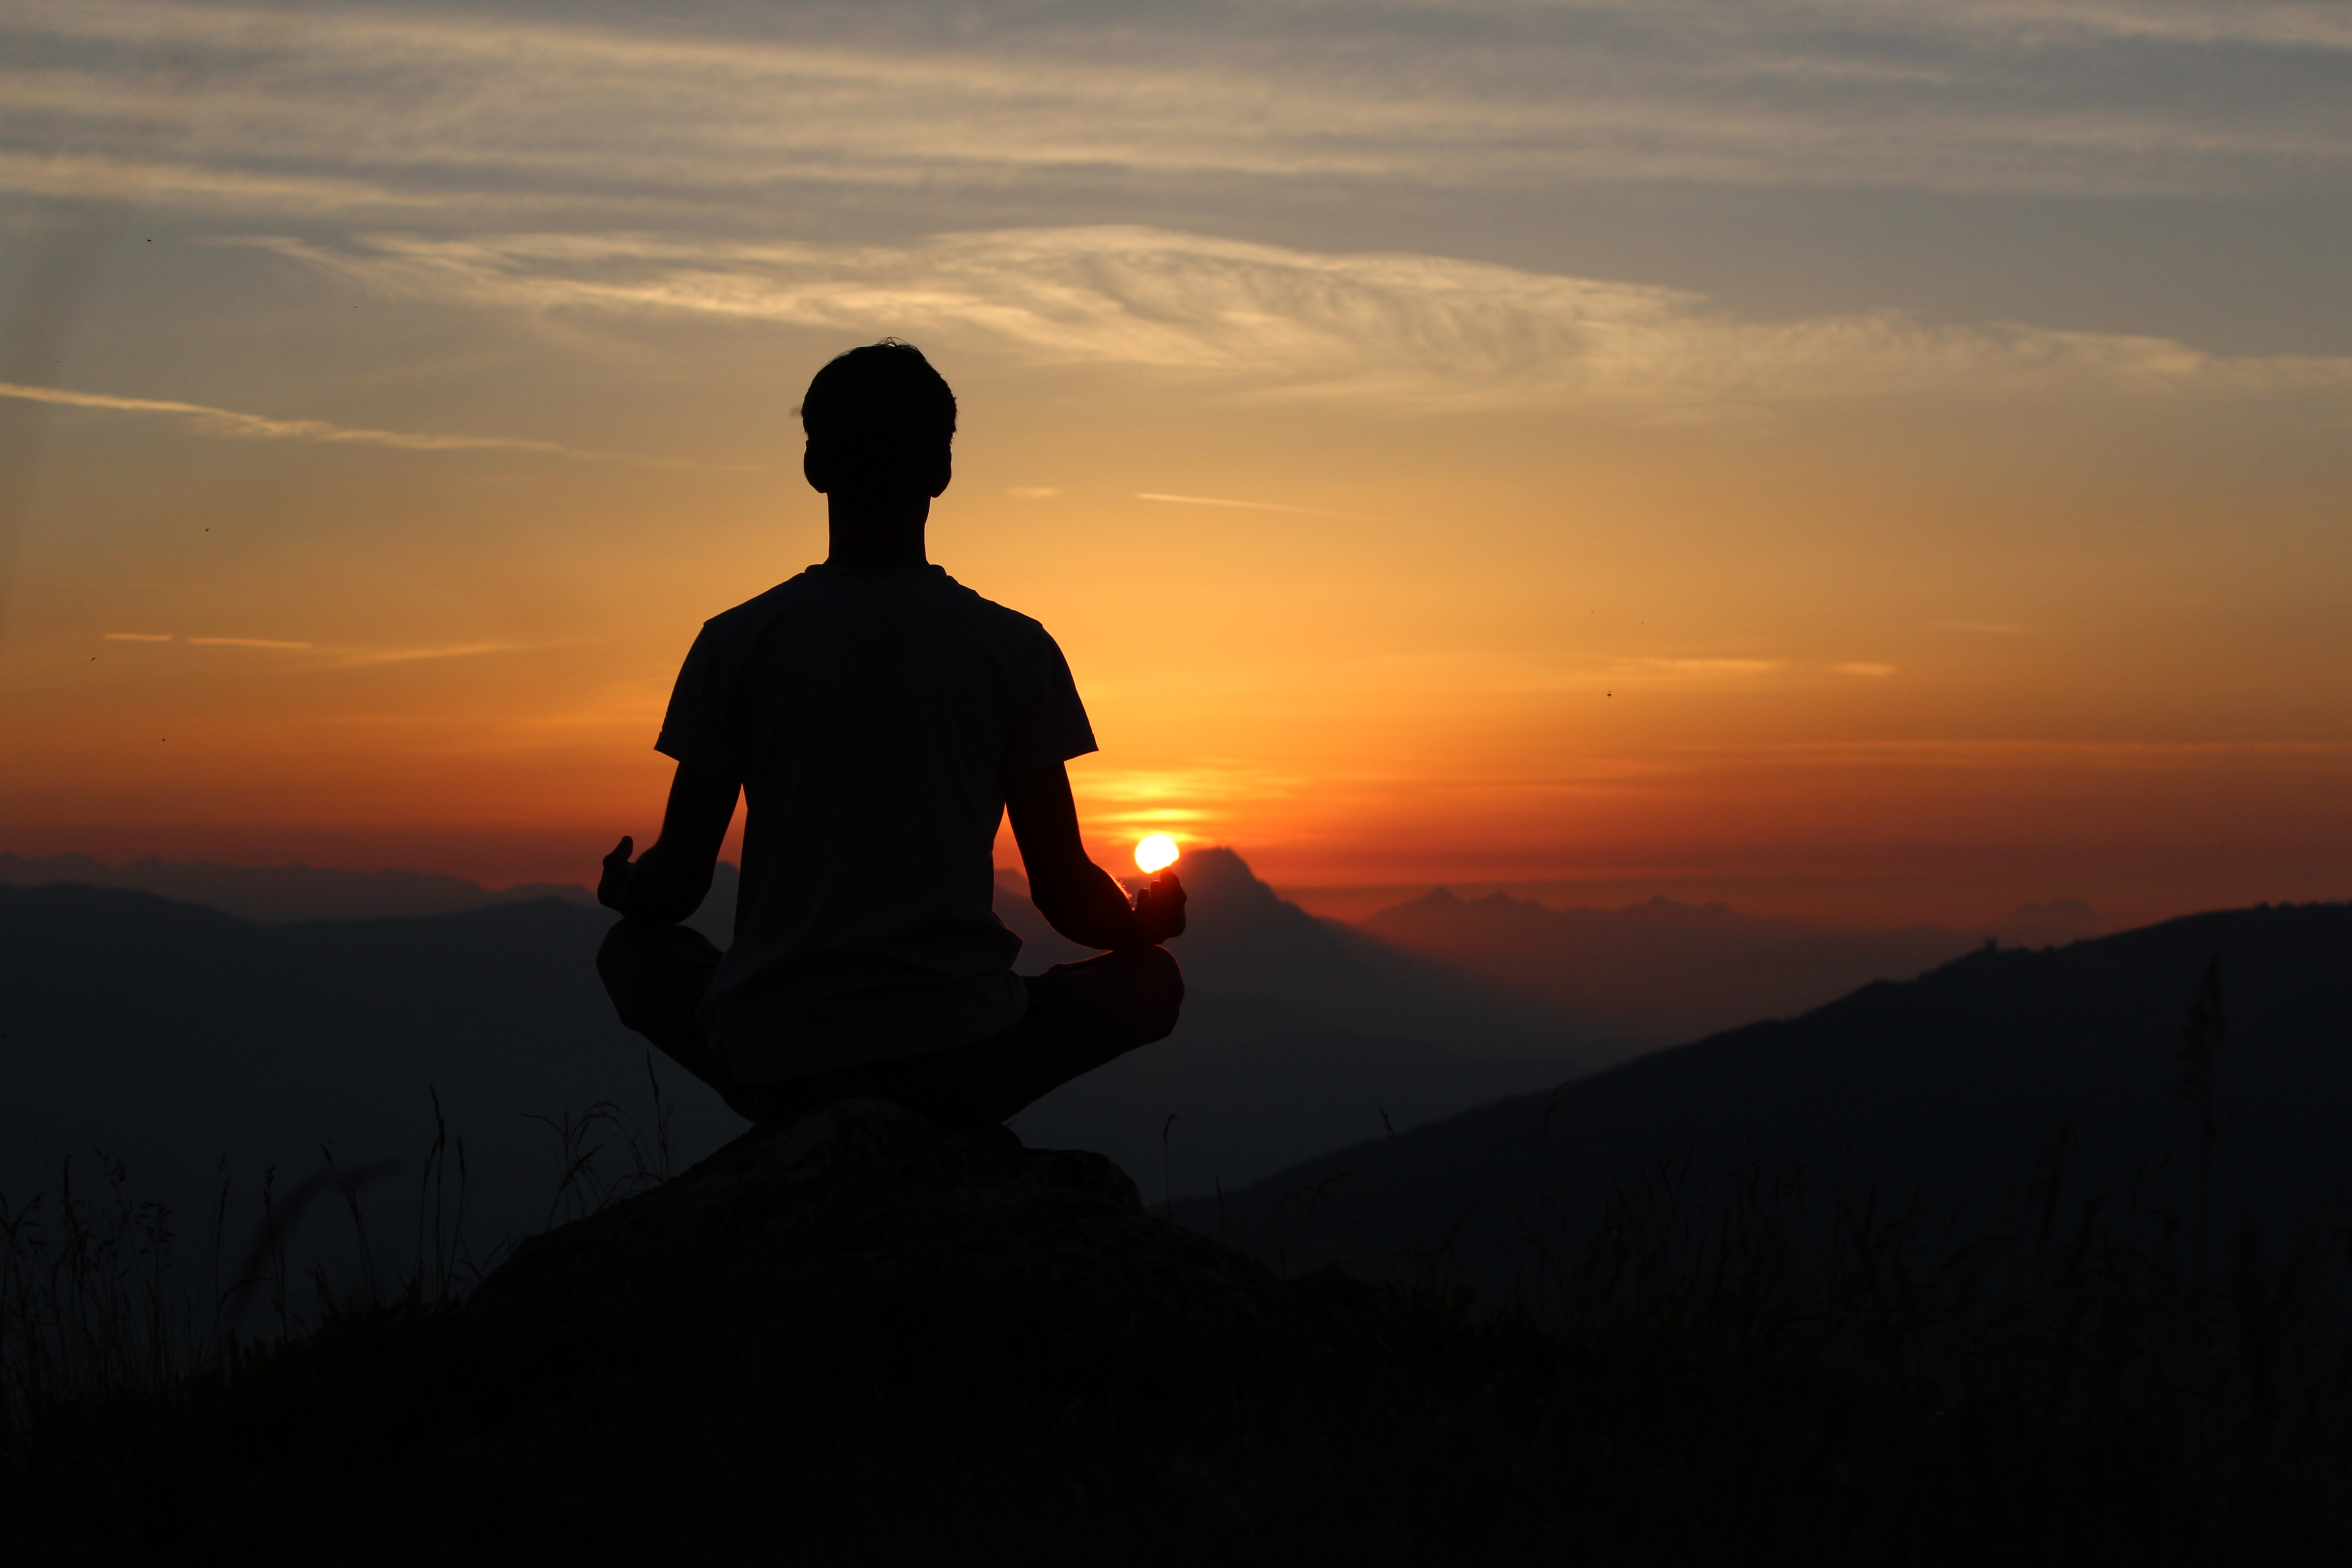 silhouette of man meditating on rock cliff during golden hour